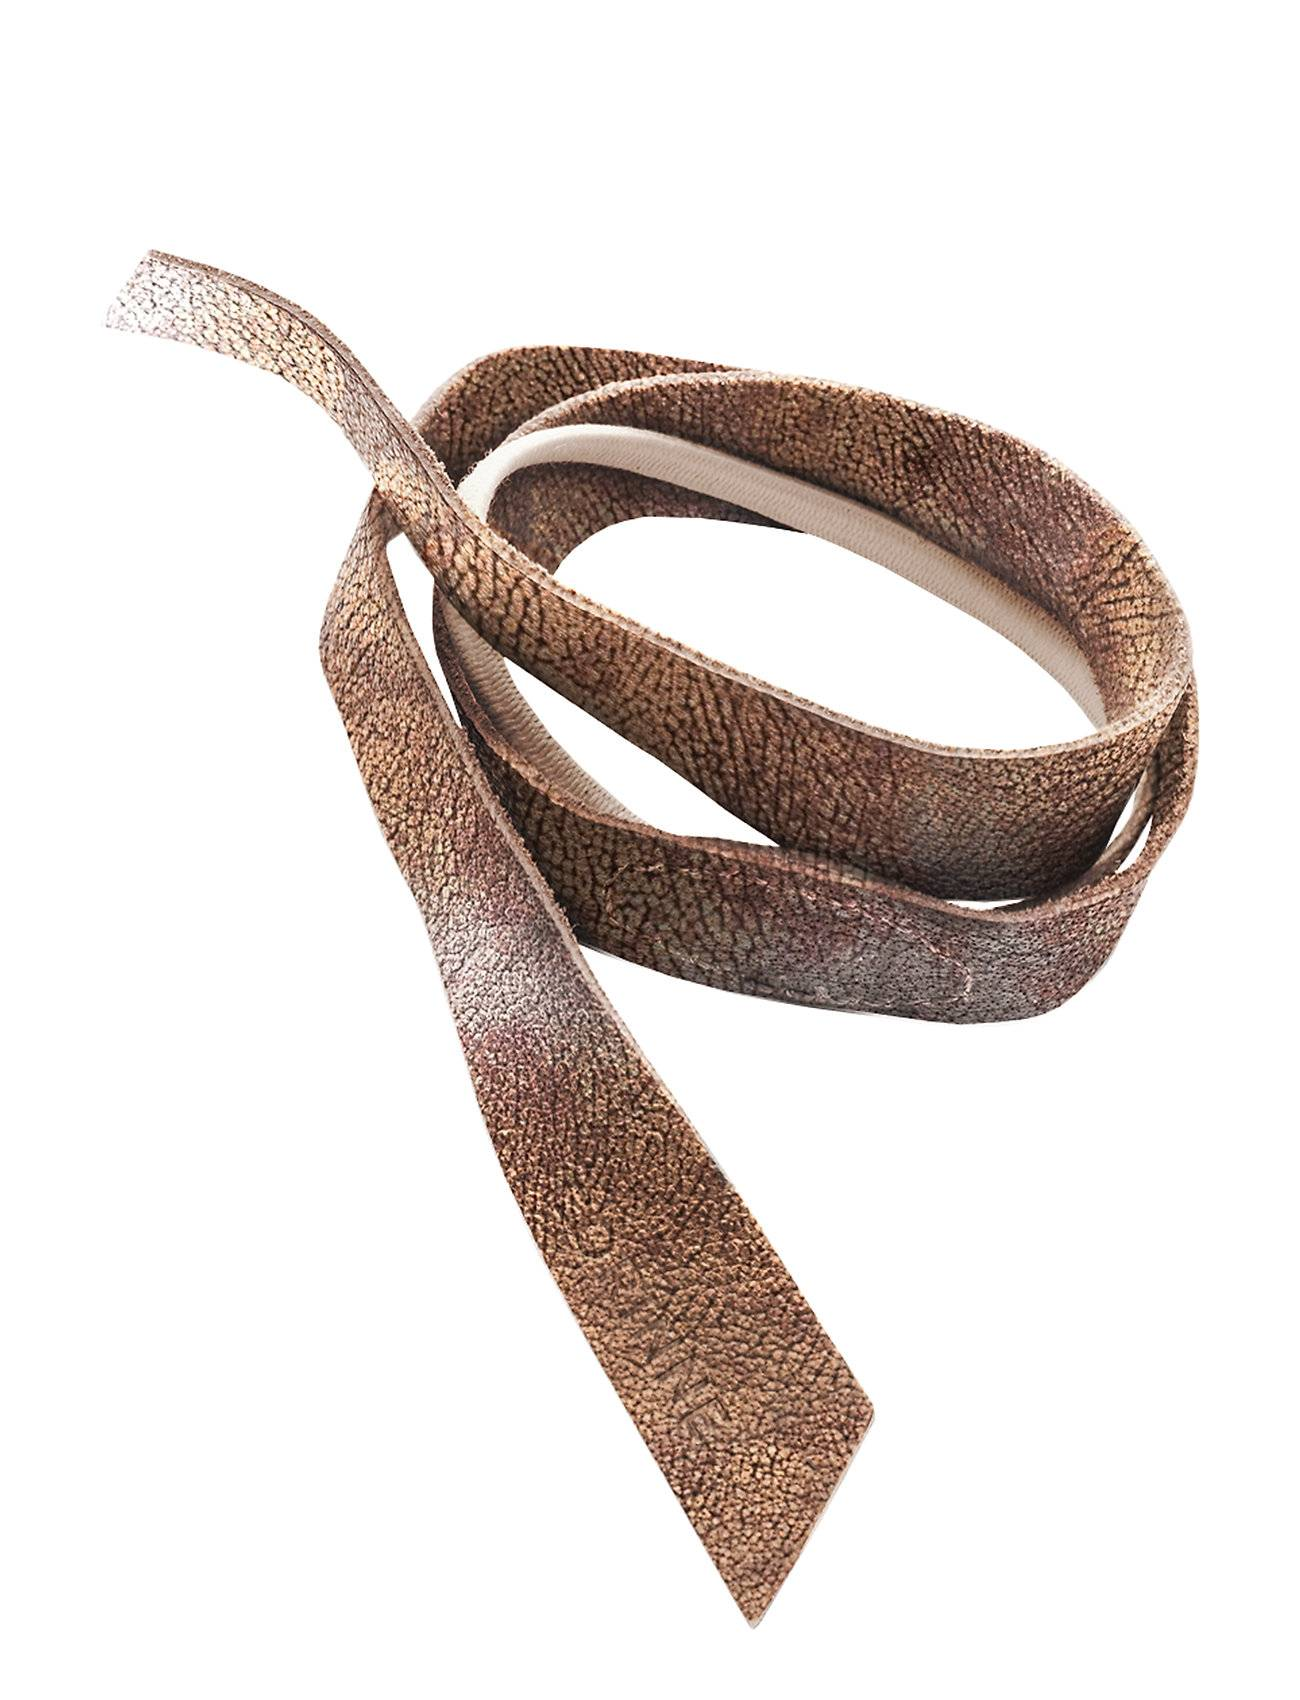 Image of Corinne Leather Band Short Layer Beauty WOMEN Hair Accessories Hair Accessories Harmaa Corinne